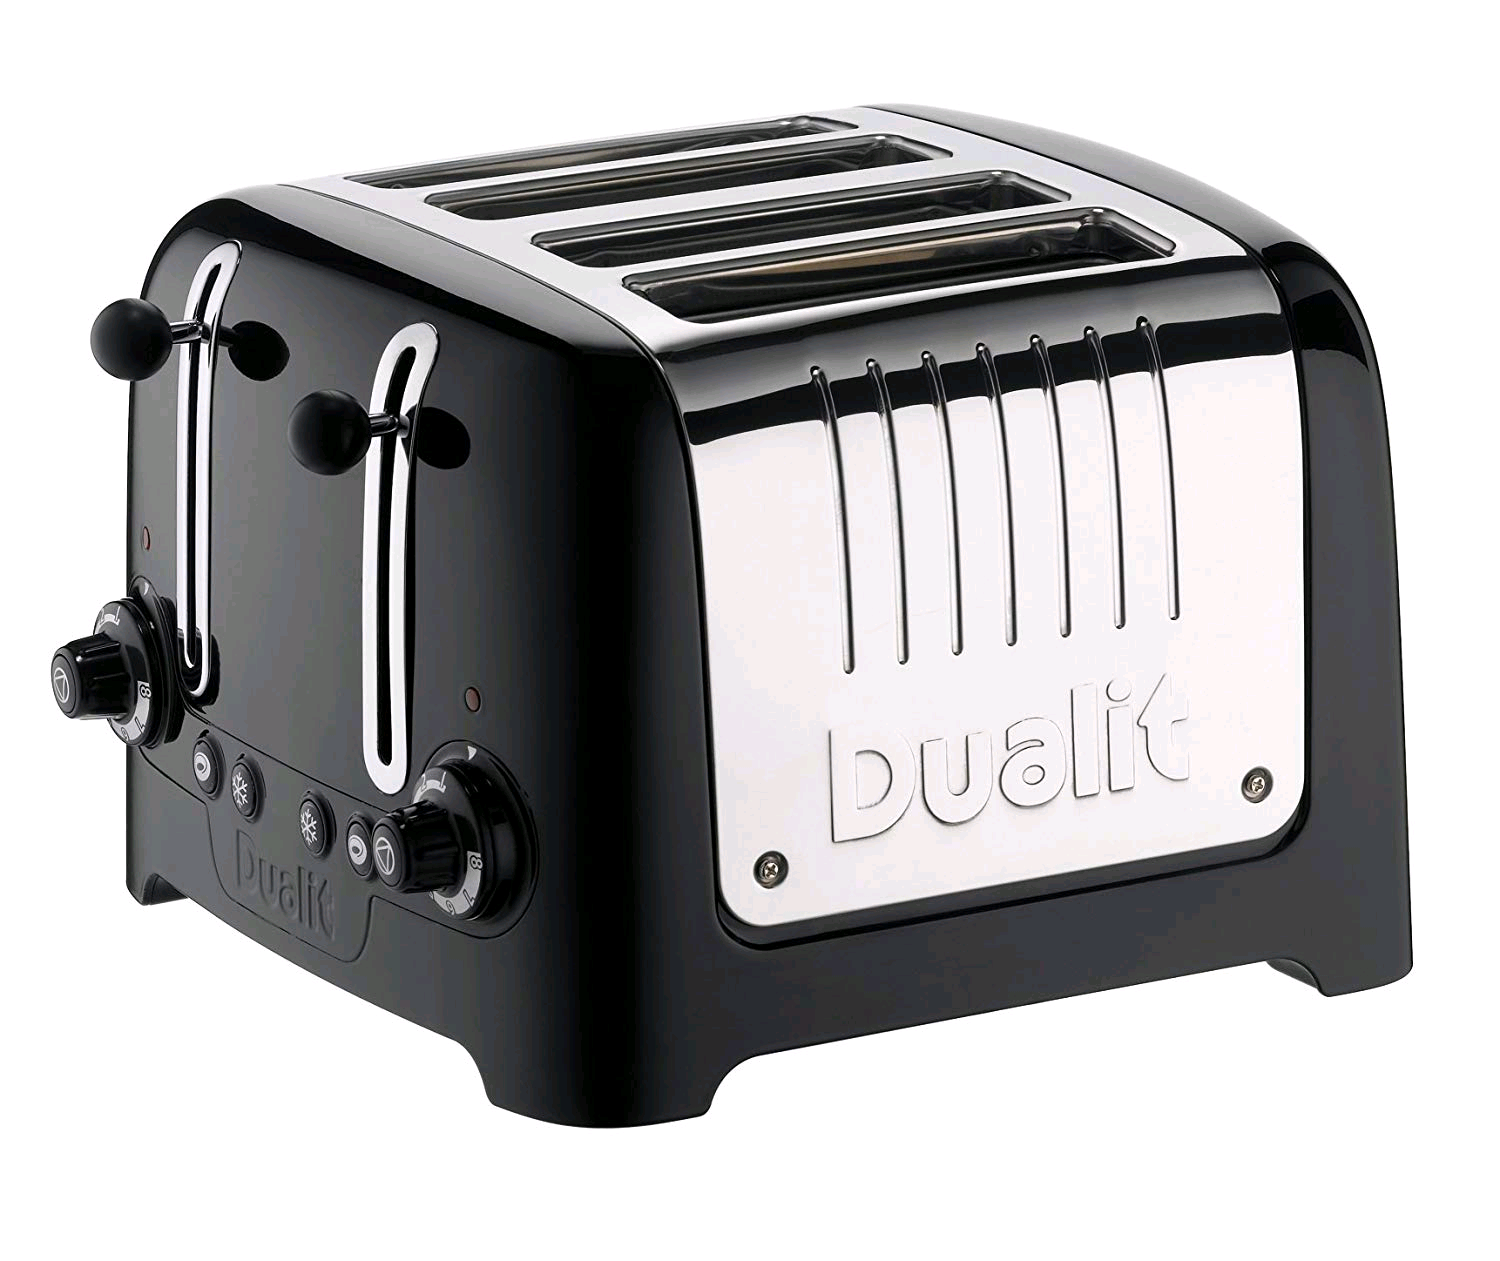 Dualit 4 Slice Toaster Black with Stainless Steel Ends